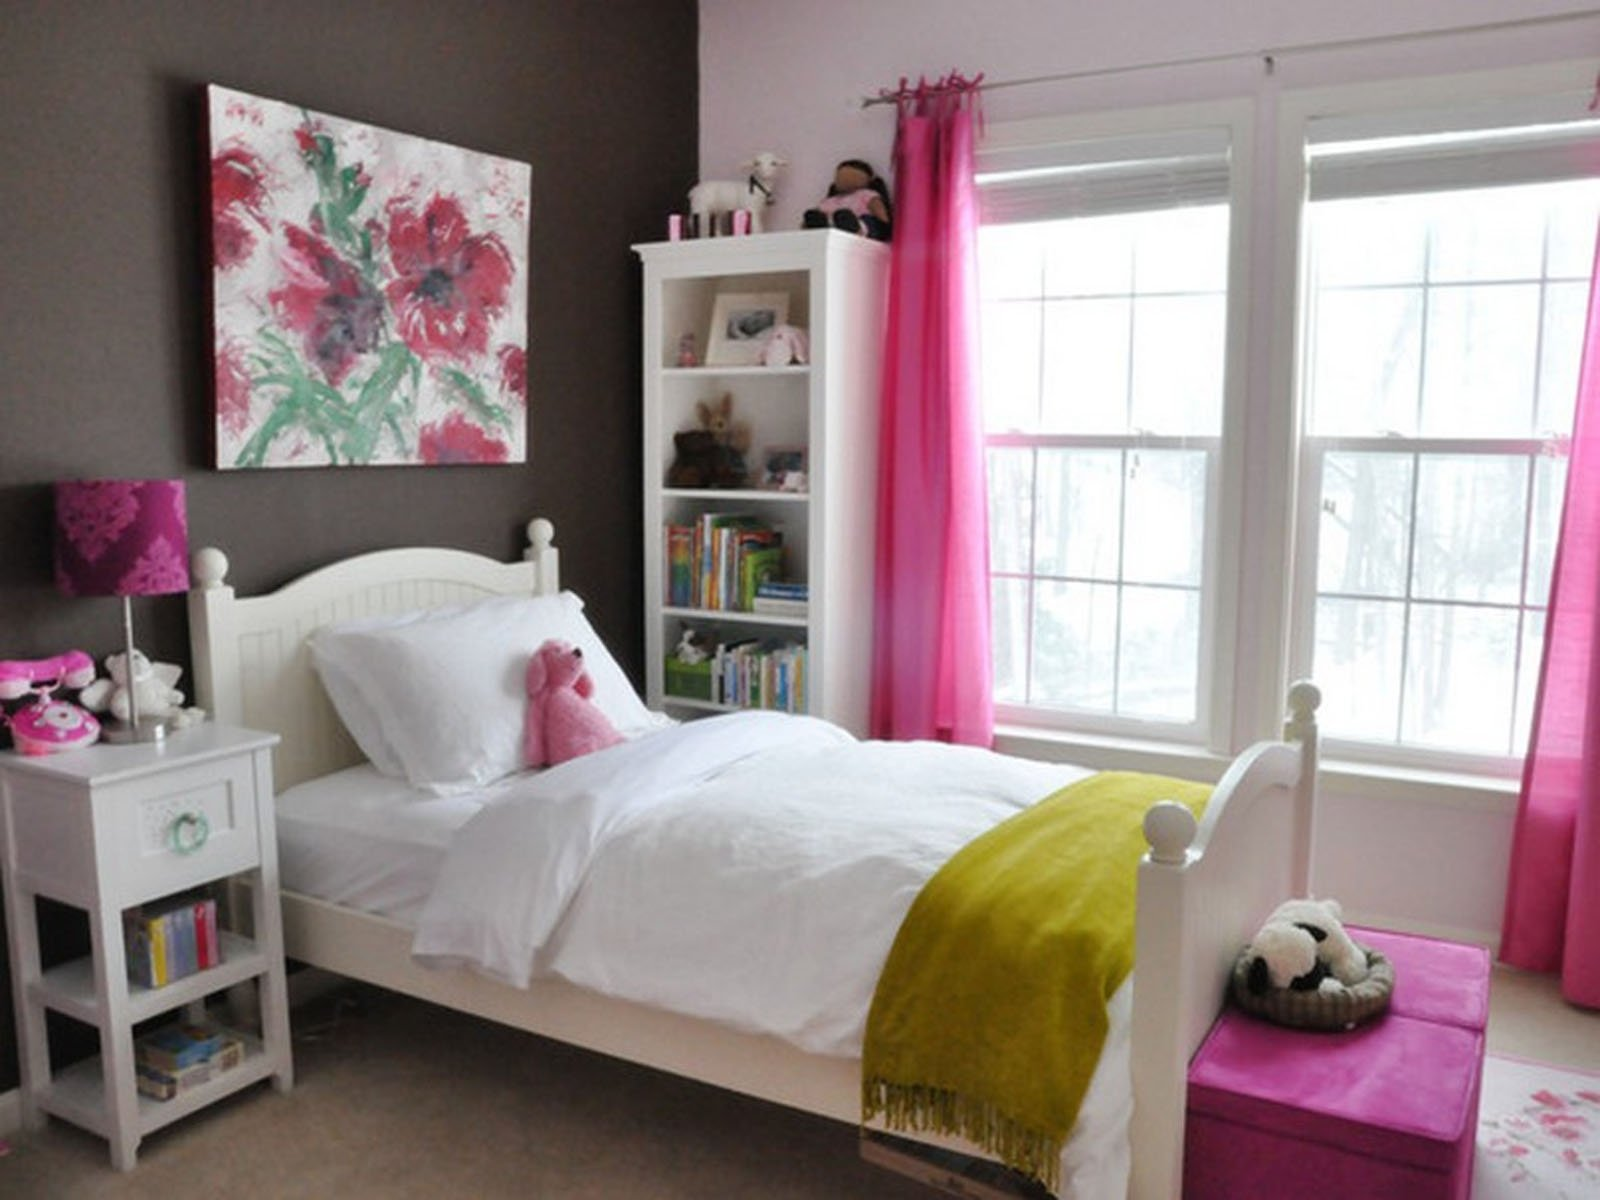 10 Lovely Teenage Girl Bedroom Ideas For Small Rooms designs for teenage girl bedrooms small bedroom ideas for teenage 1 2021